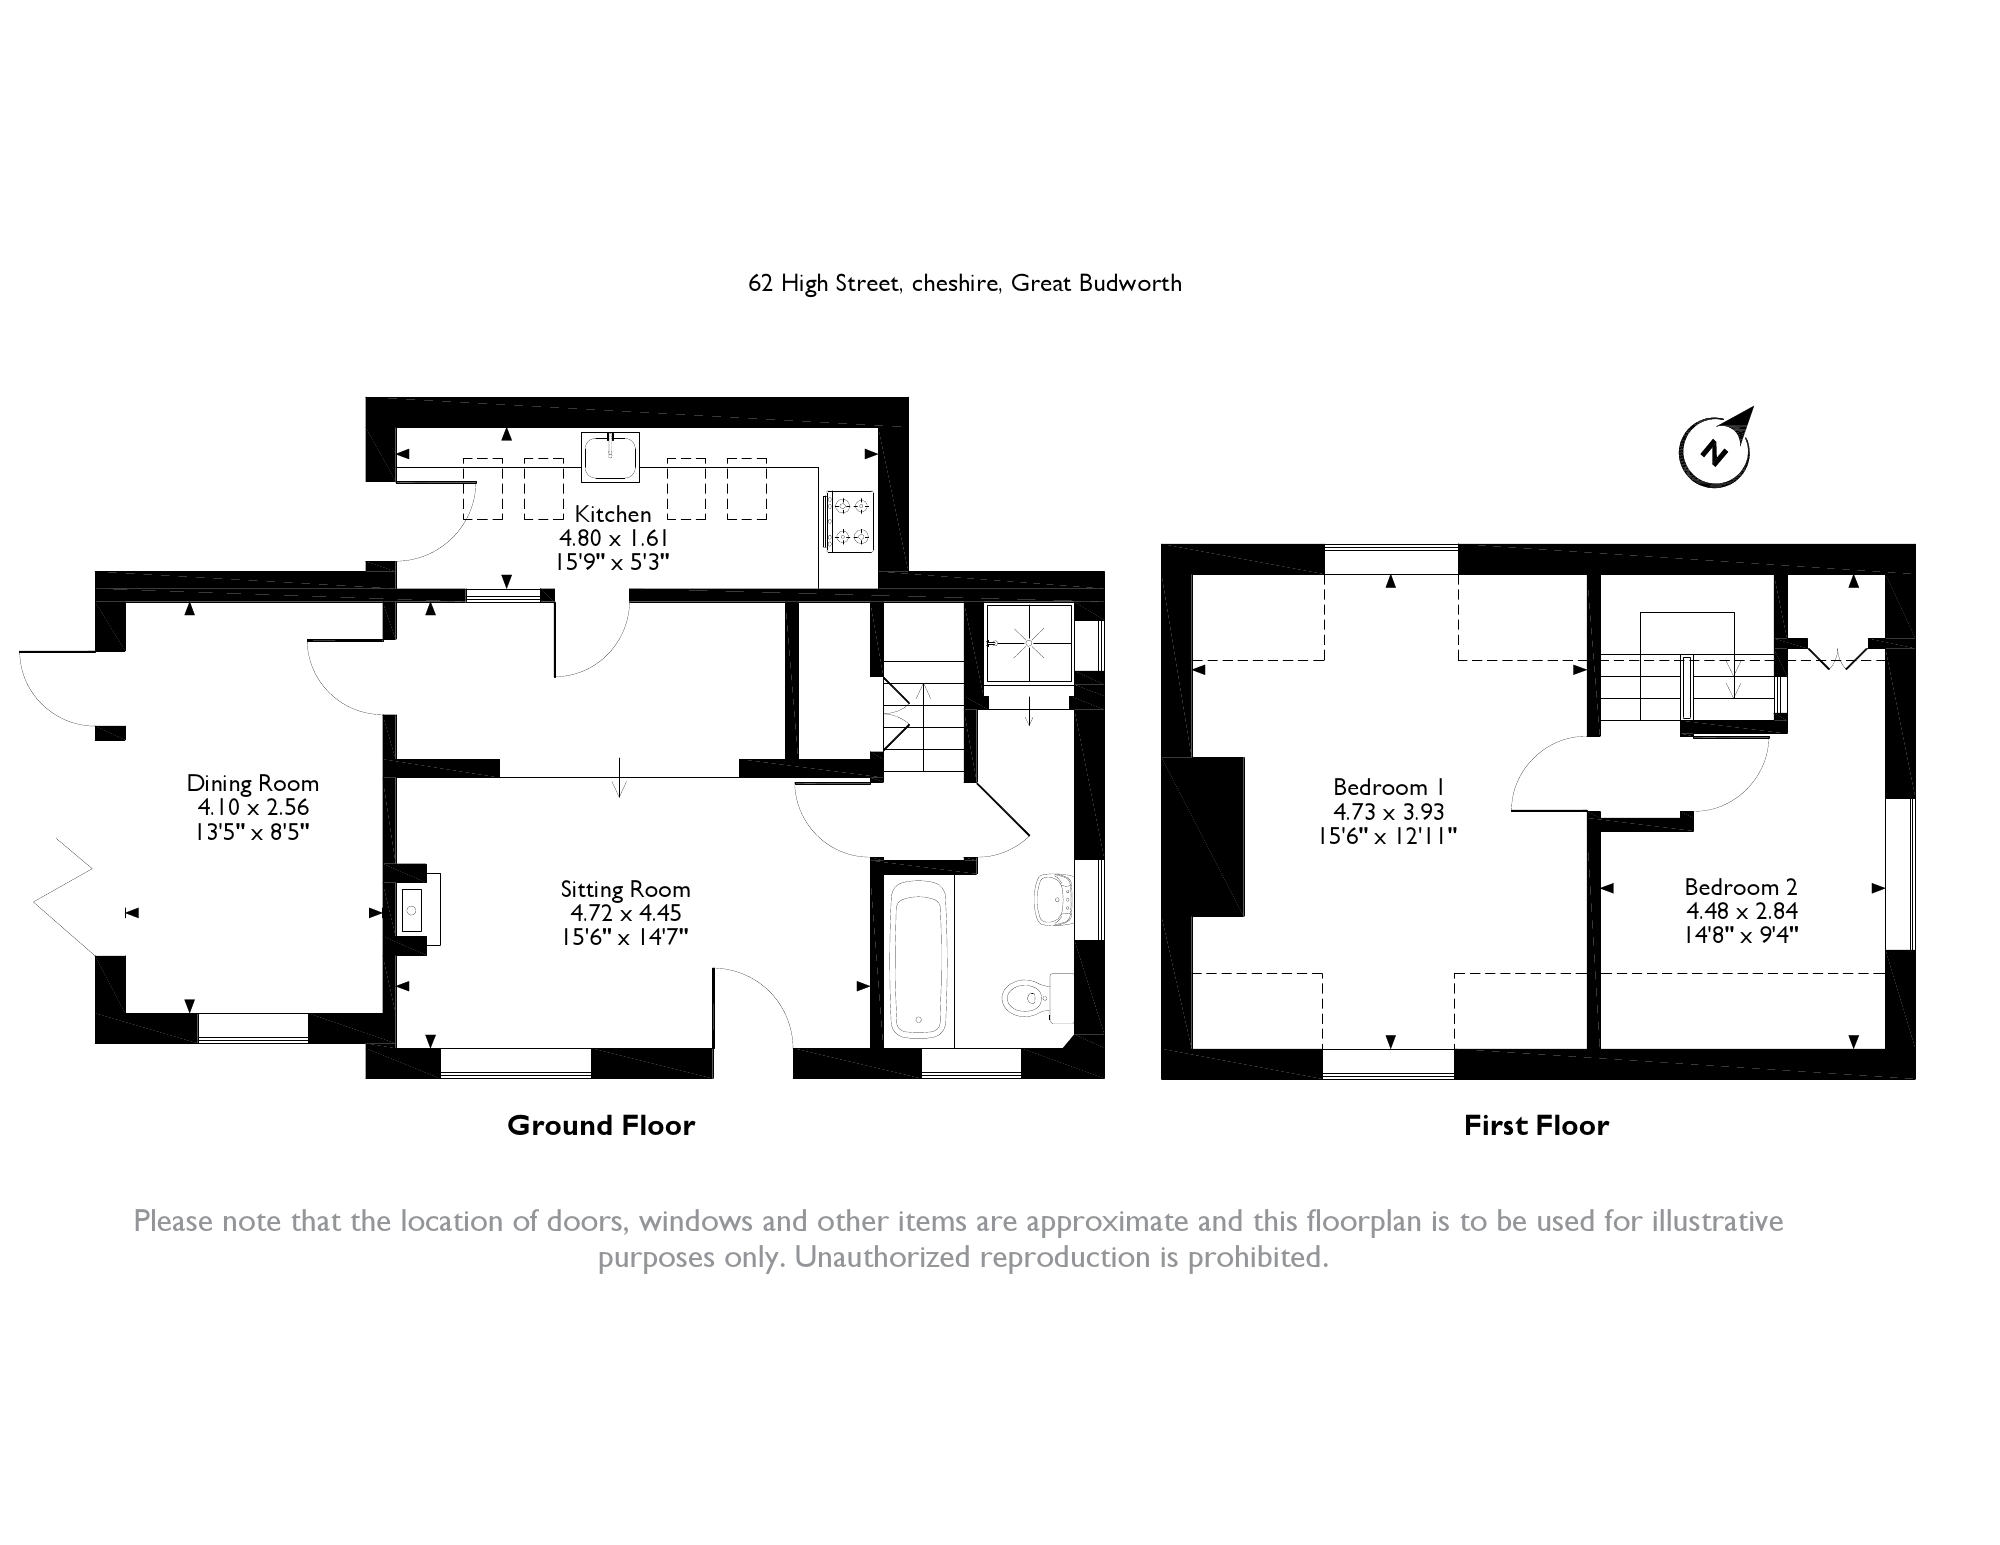 High Street, Great Budworth, Cheshire, CW9 floor plan